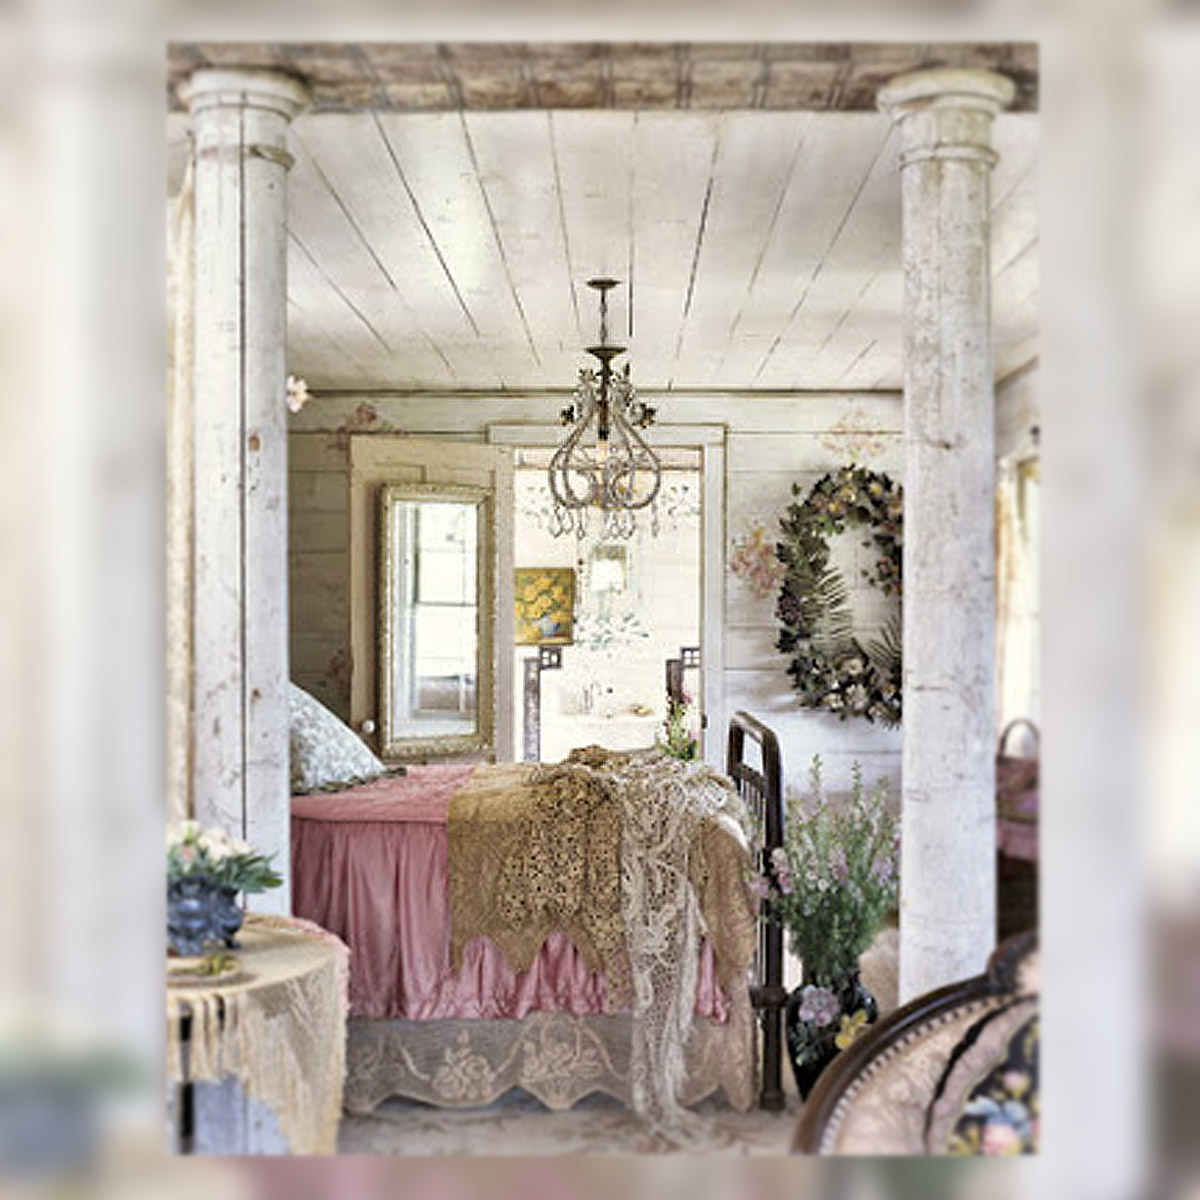 almacen vintage dormitorios shabby chic bedrooms shabby chic. Black Bedroom Furniture Sets. Home Design Ideas